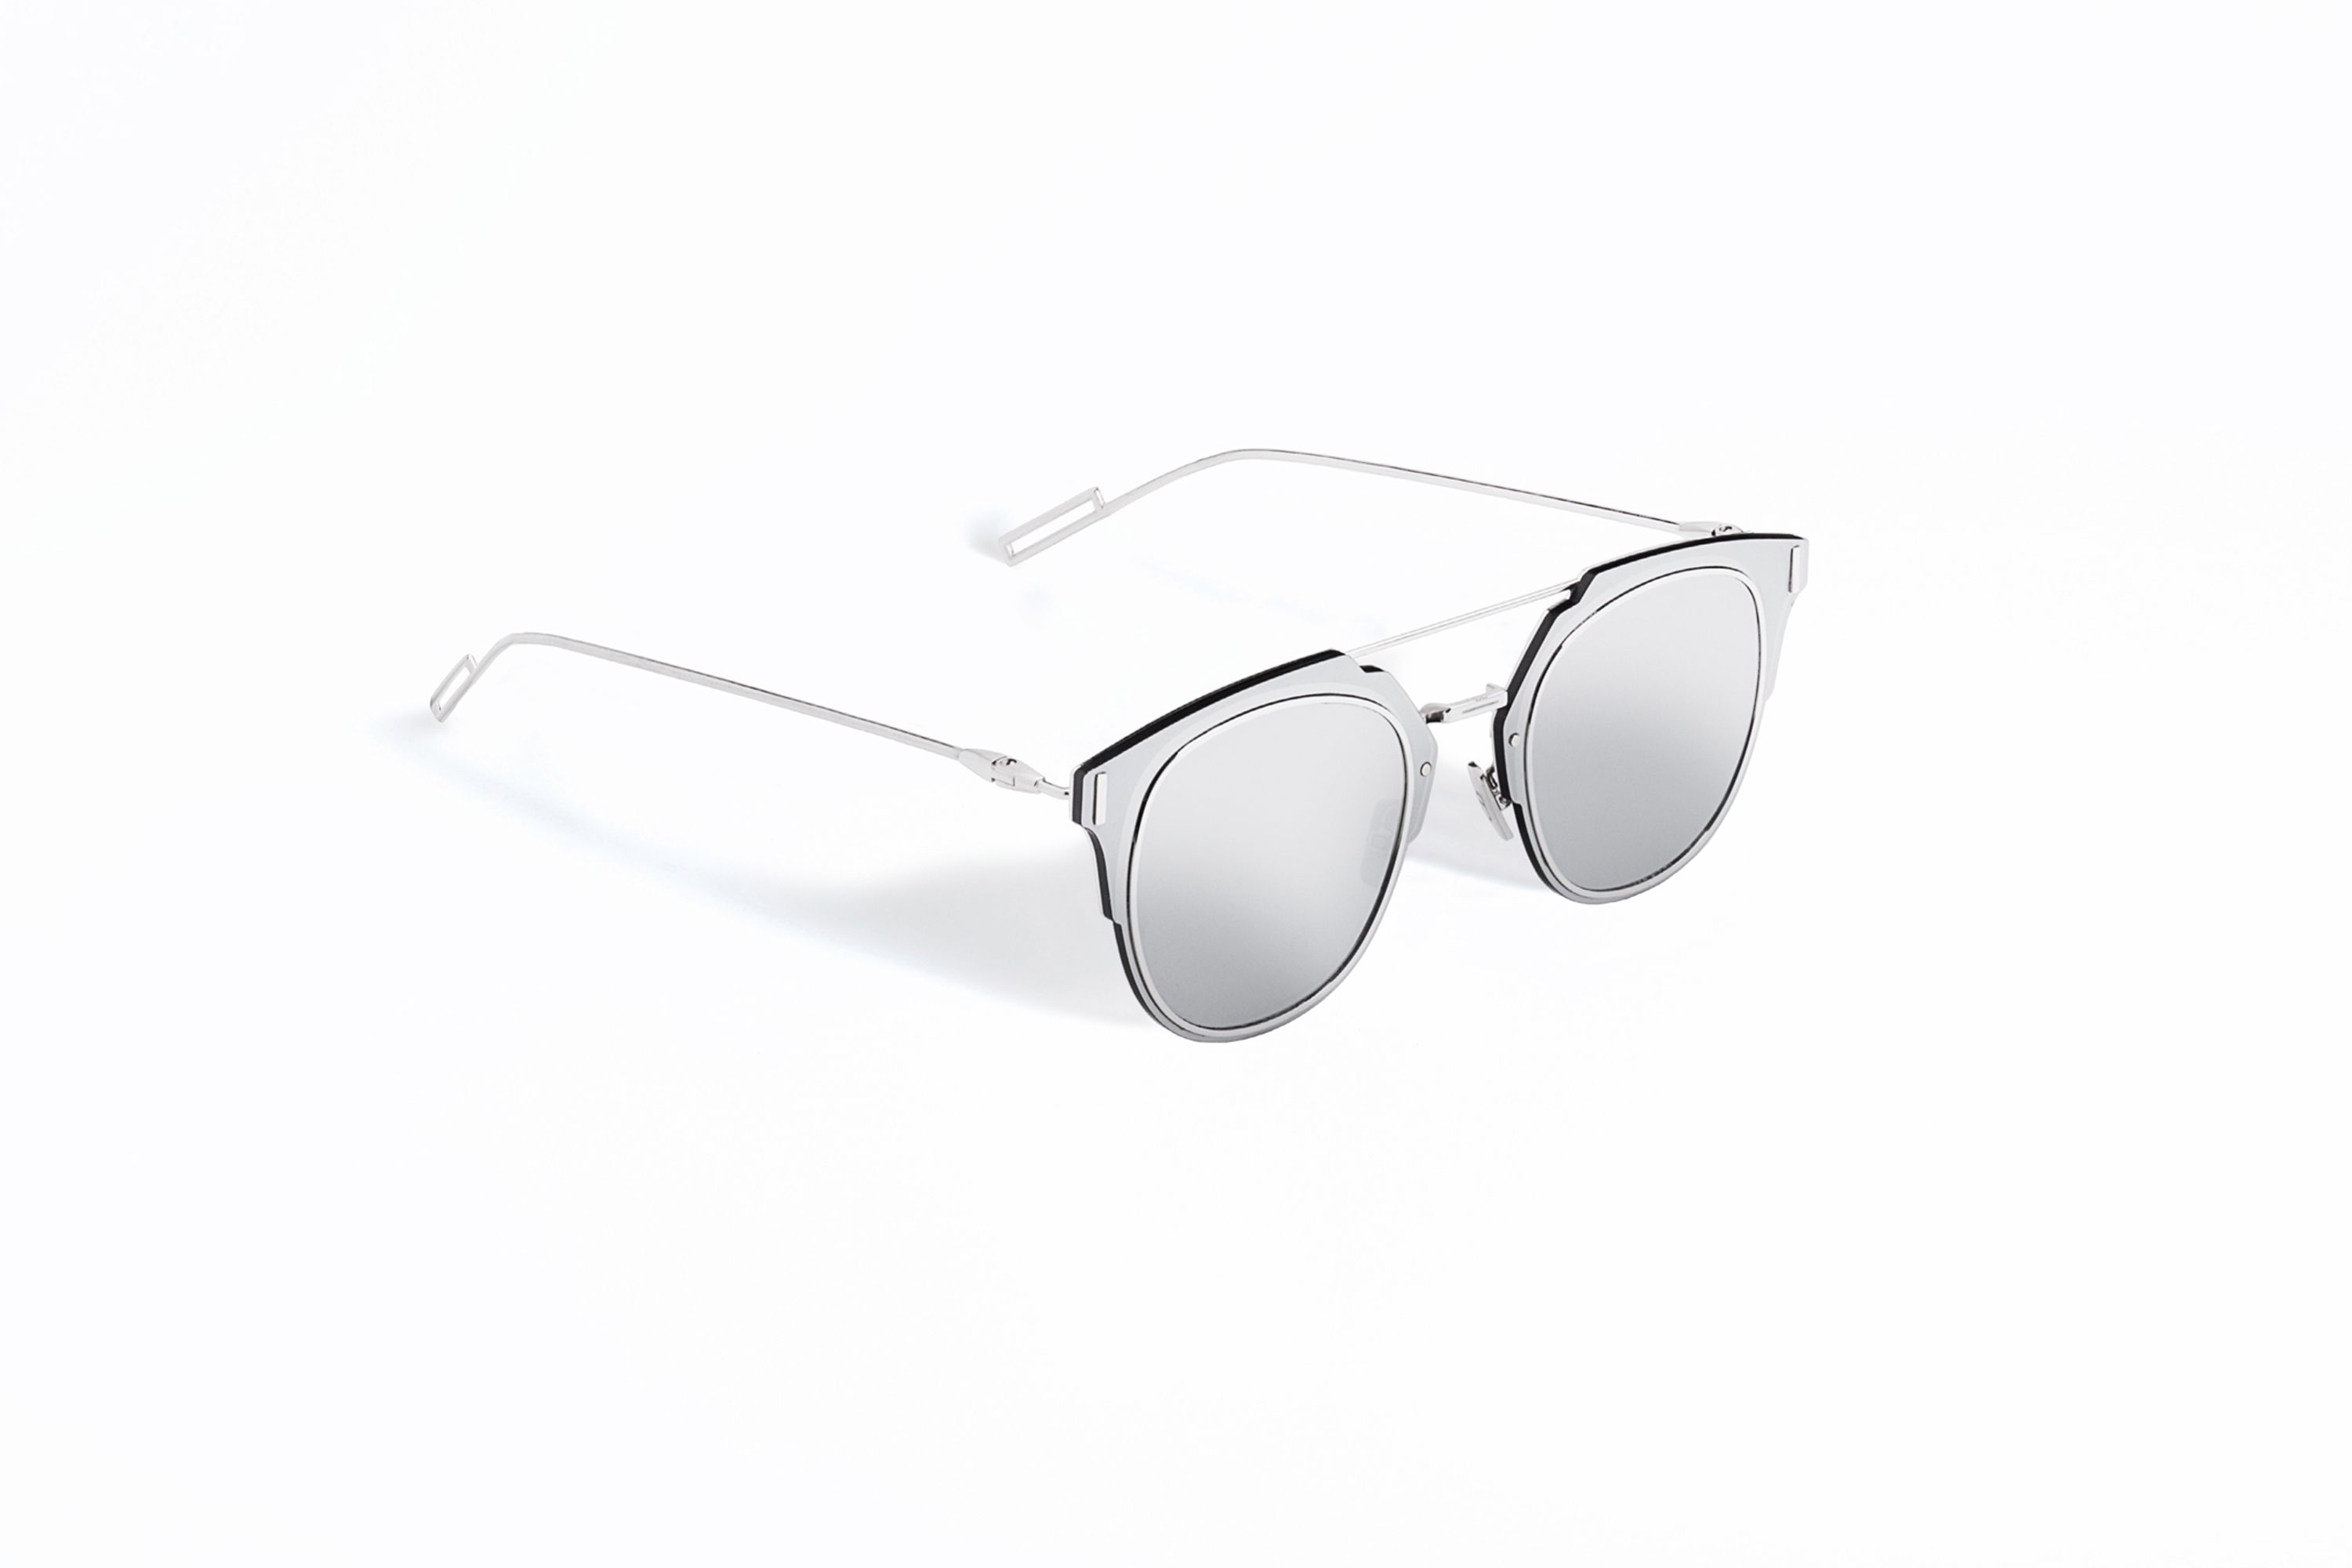 lunettes dior composit 1 0 argent dior 430 eur 590 at saks and bloomingdale 39 s my style